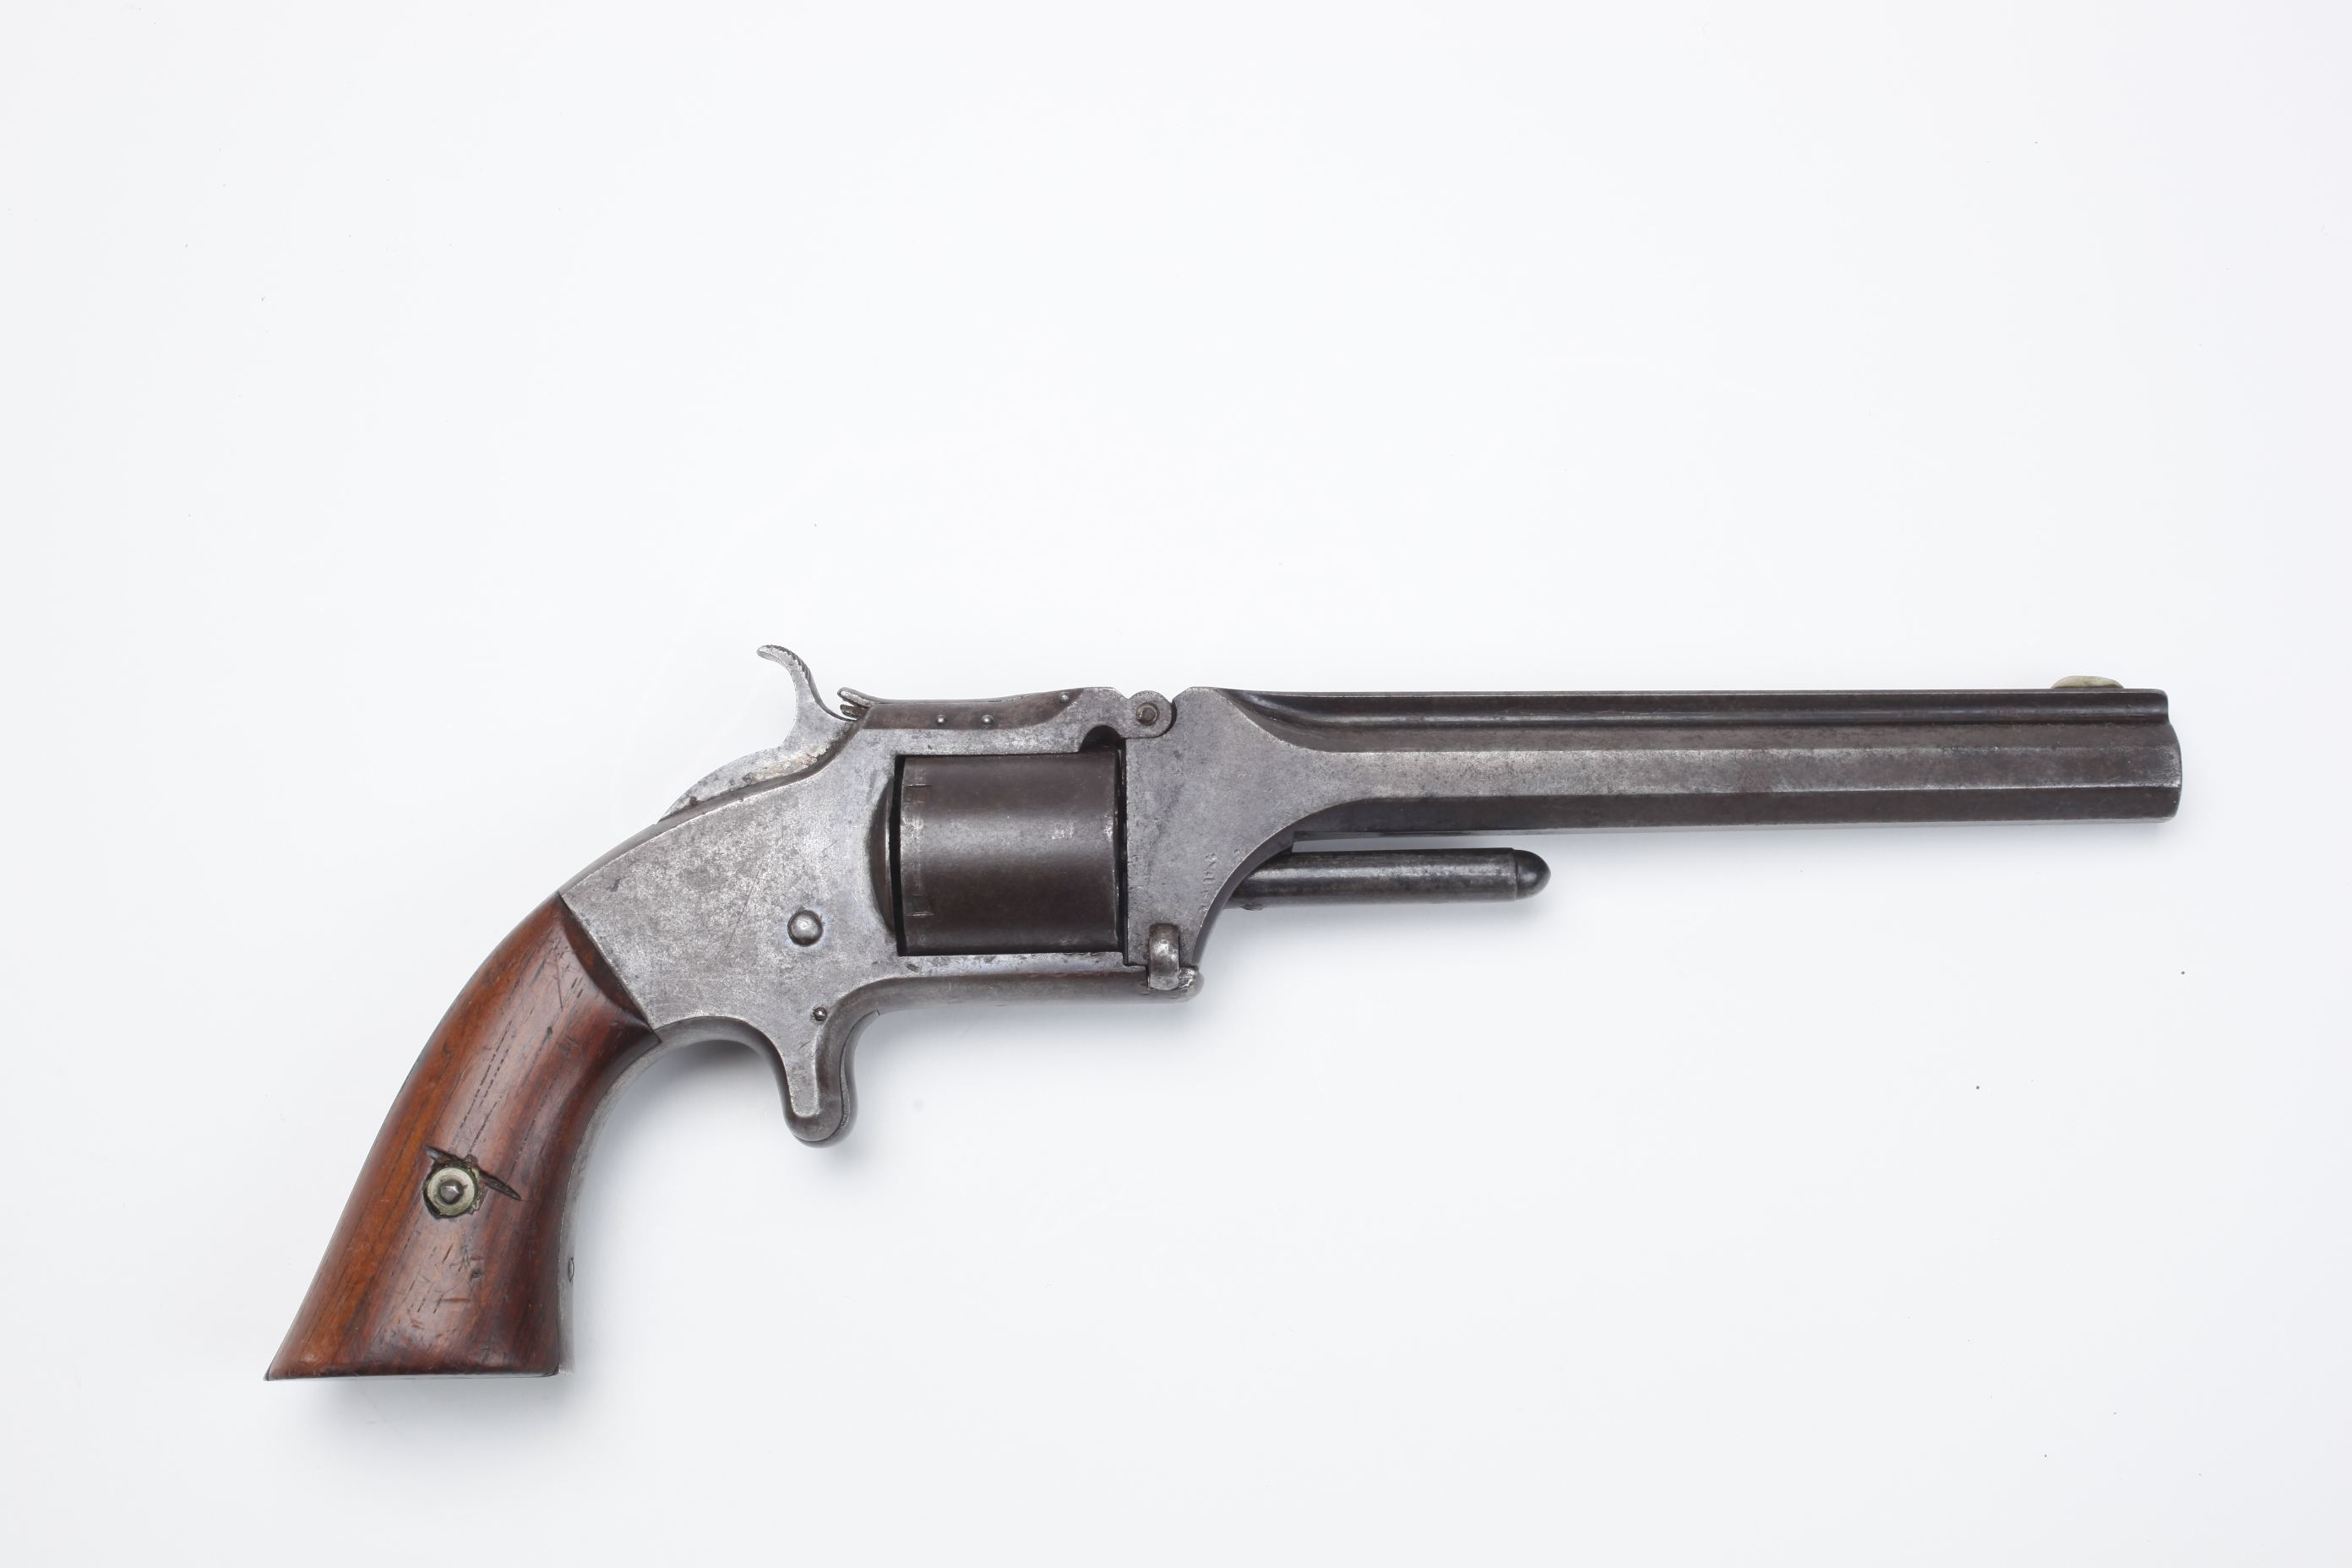 Smith & Wesson Model No 2 revolver